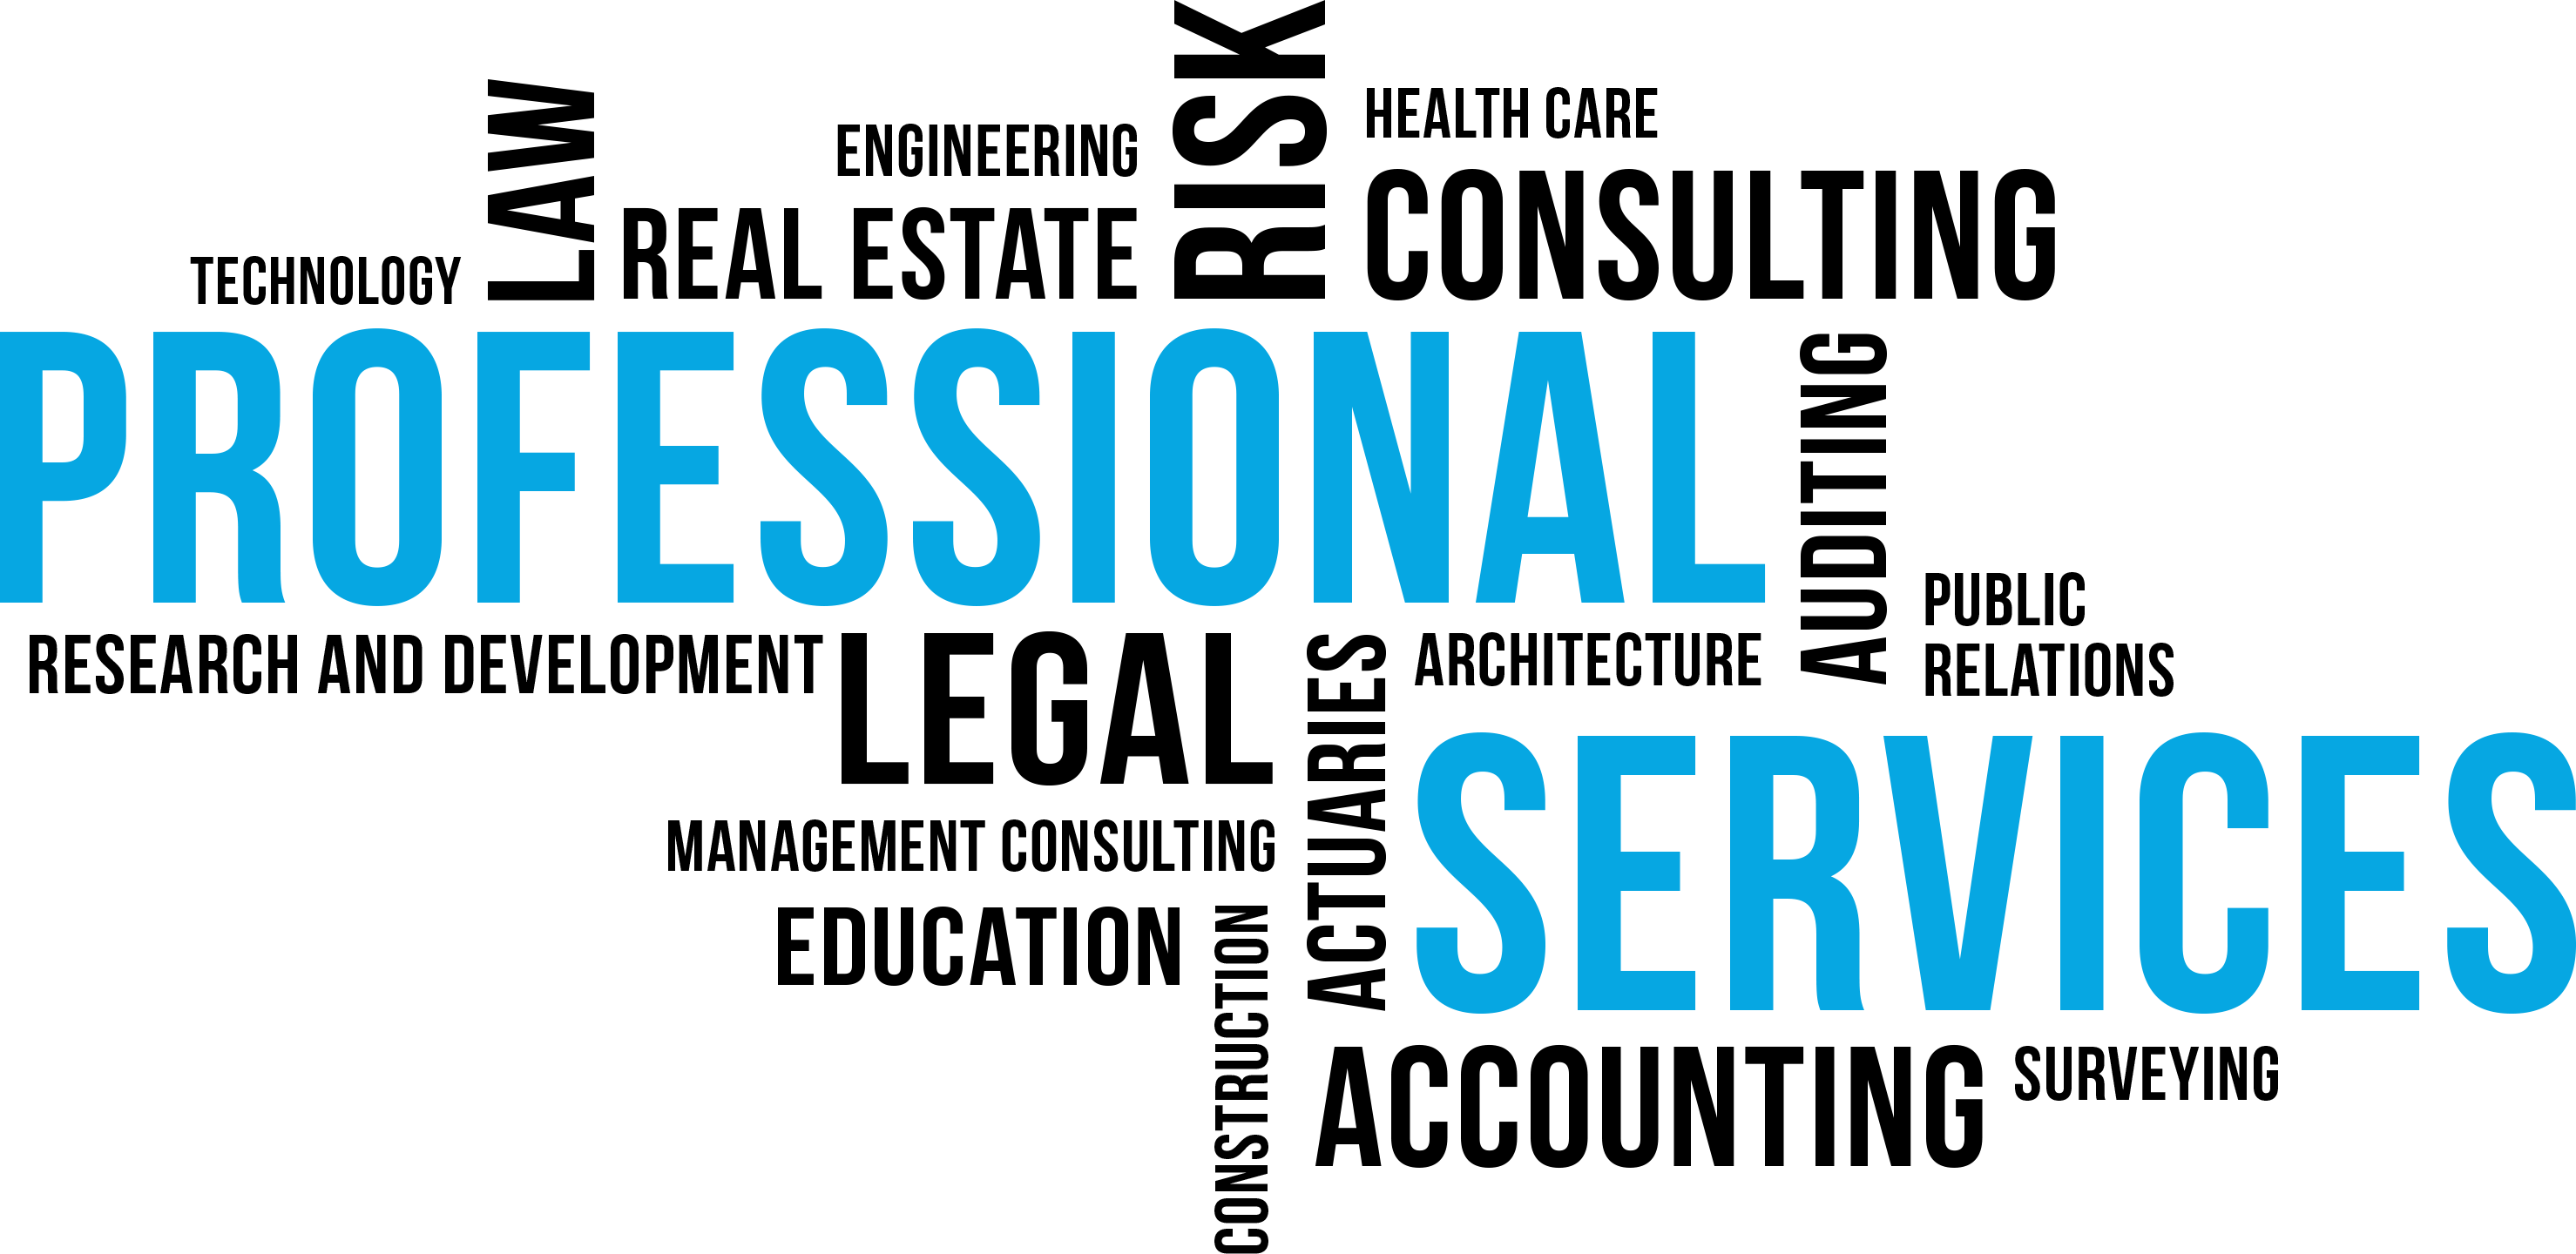 professional services service pro effective industry corporate word business cleanliness cloud solutions meets companies experience company strategies industries dubai digital